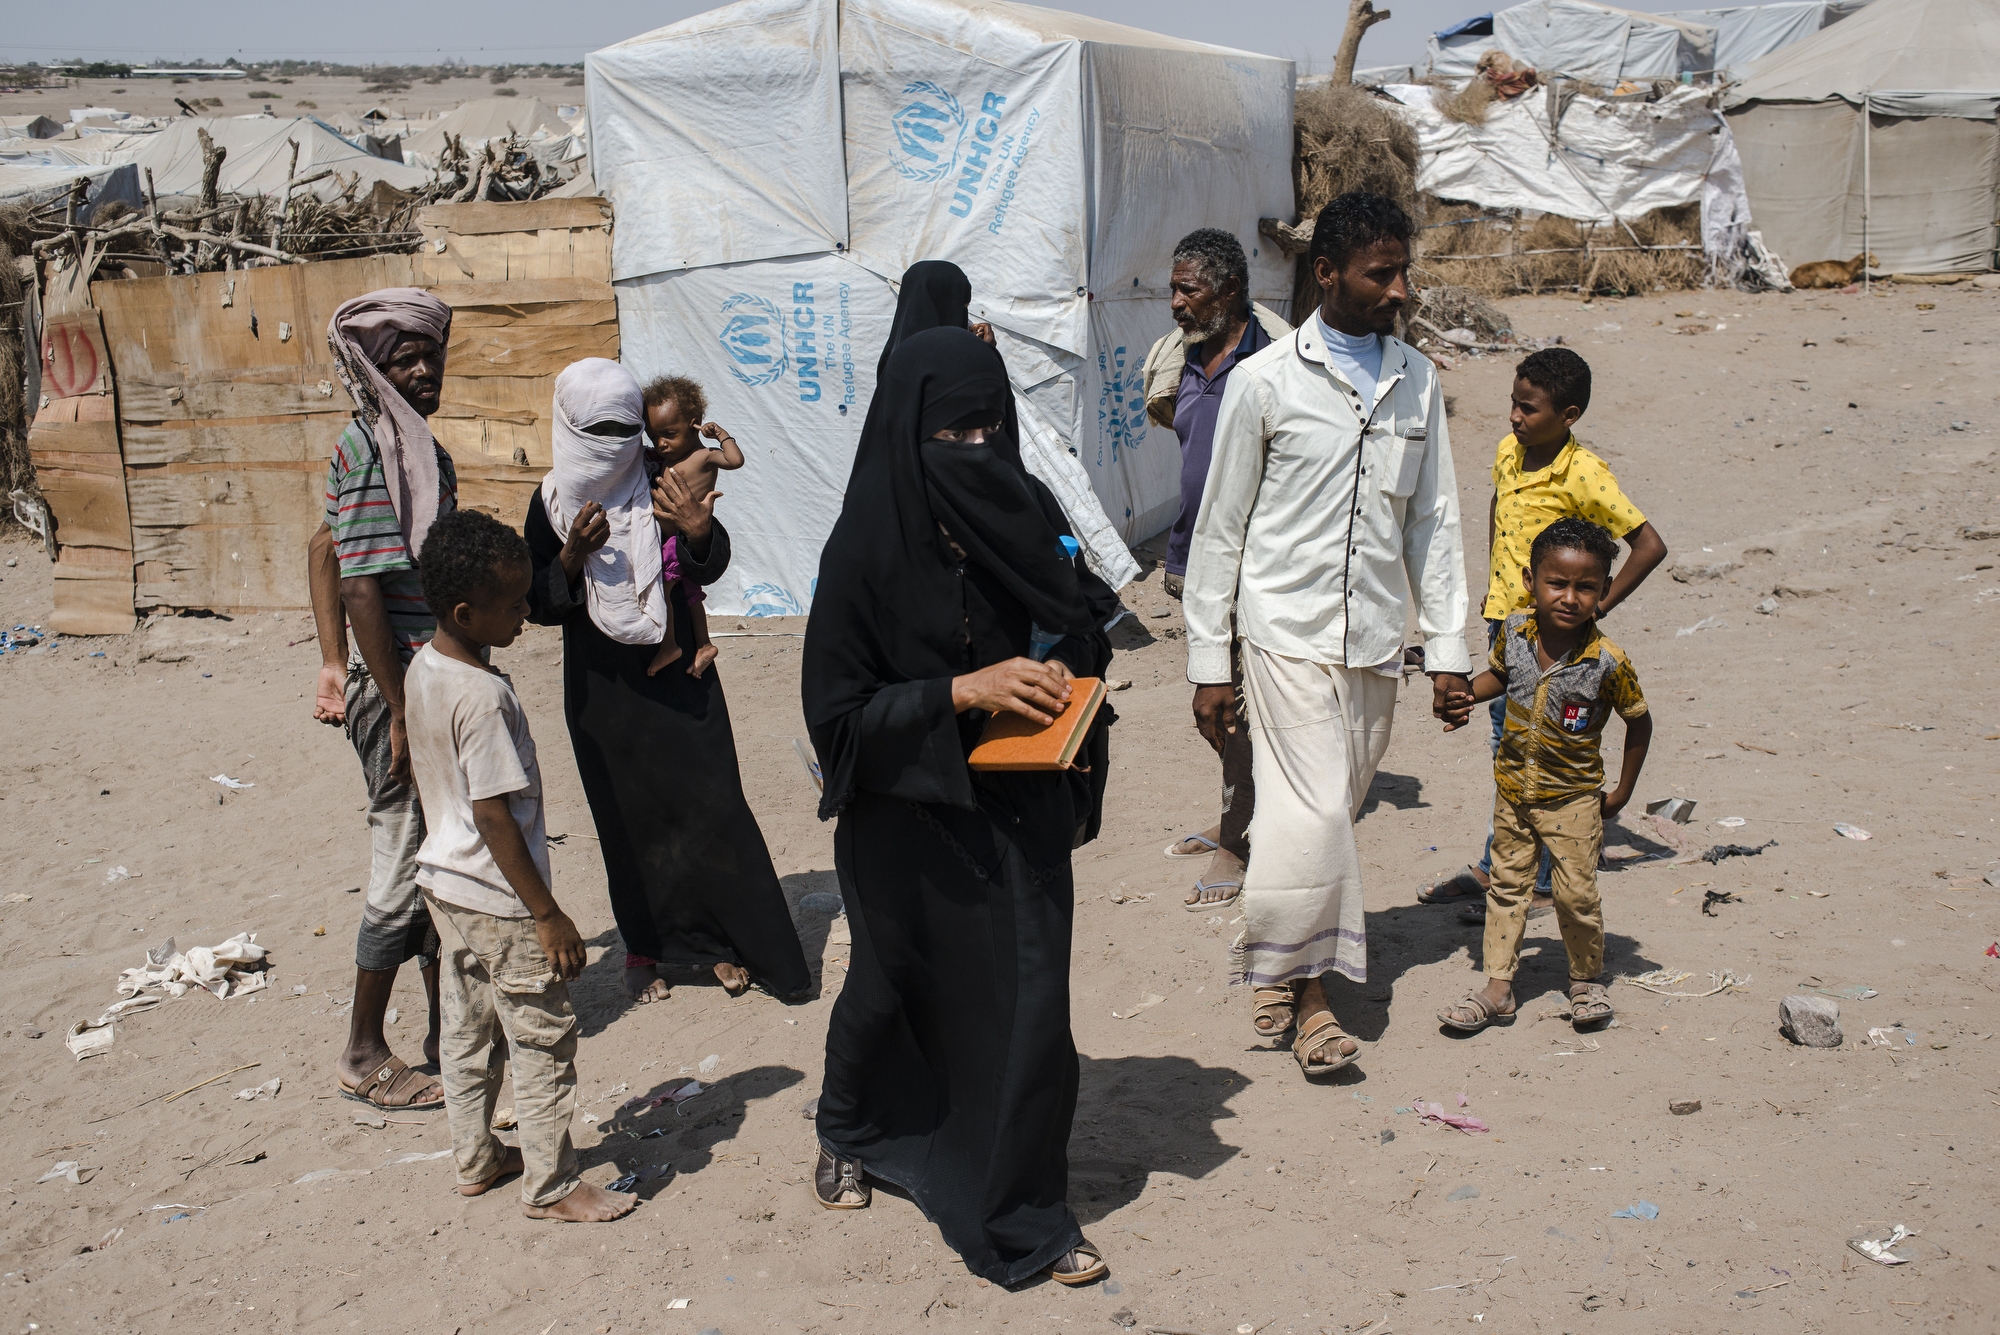 AlexPotter_Yemen_HumanitarianSituation_South_24.JPG